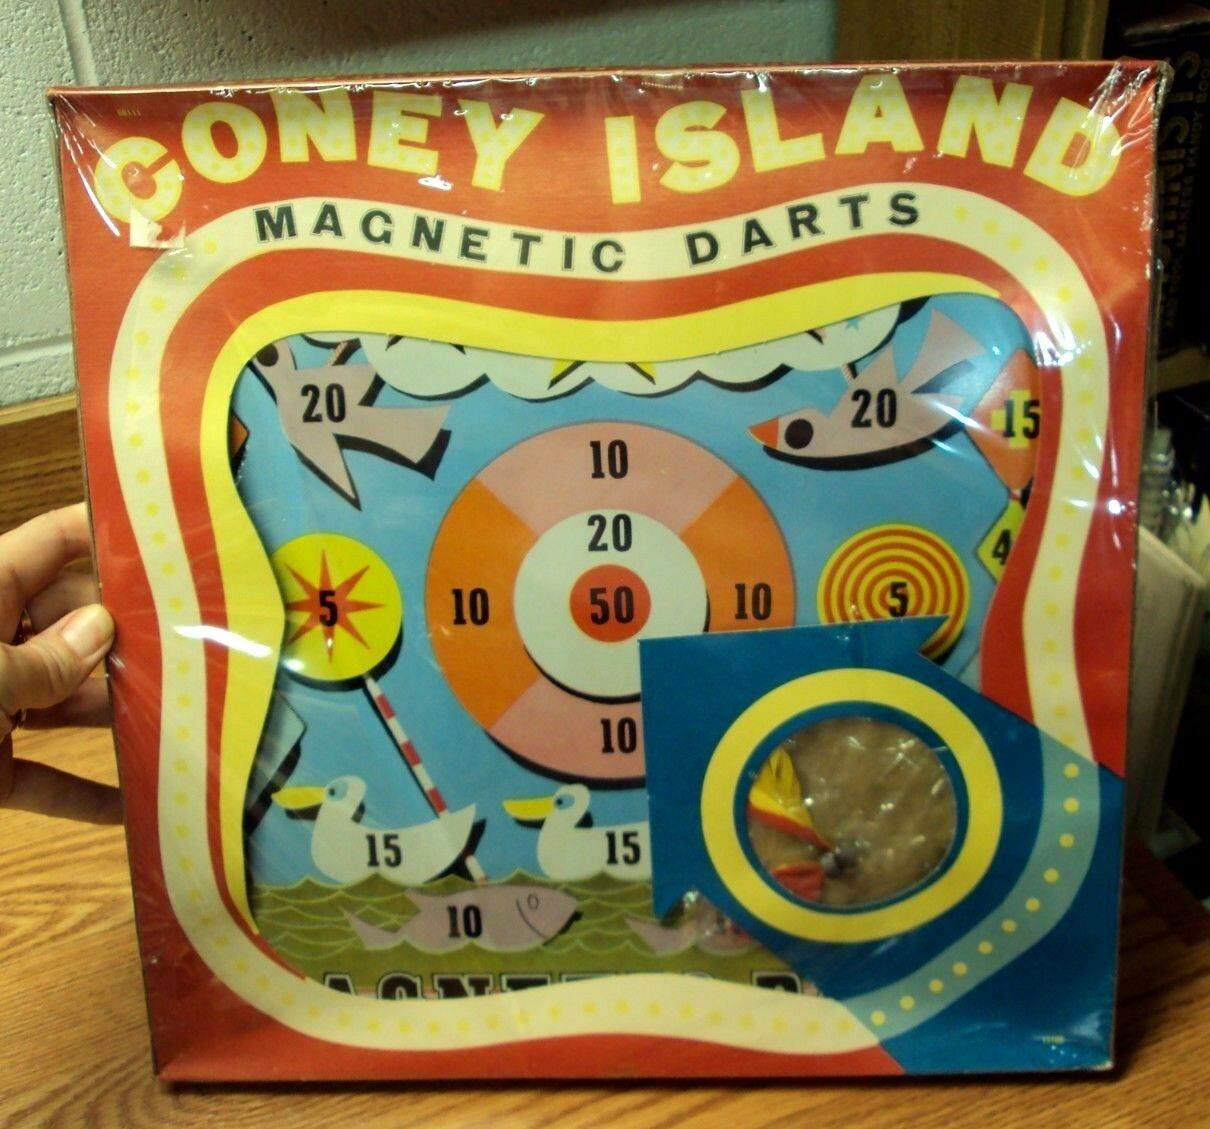 Vtg 1962 PRESSMAN TOY CORP.  CONEY ISLAND MAGNETIC DARTS Game  NEW